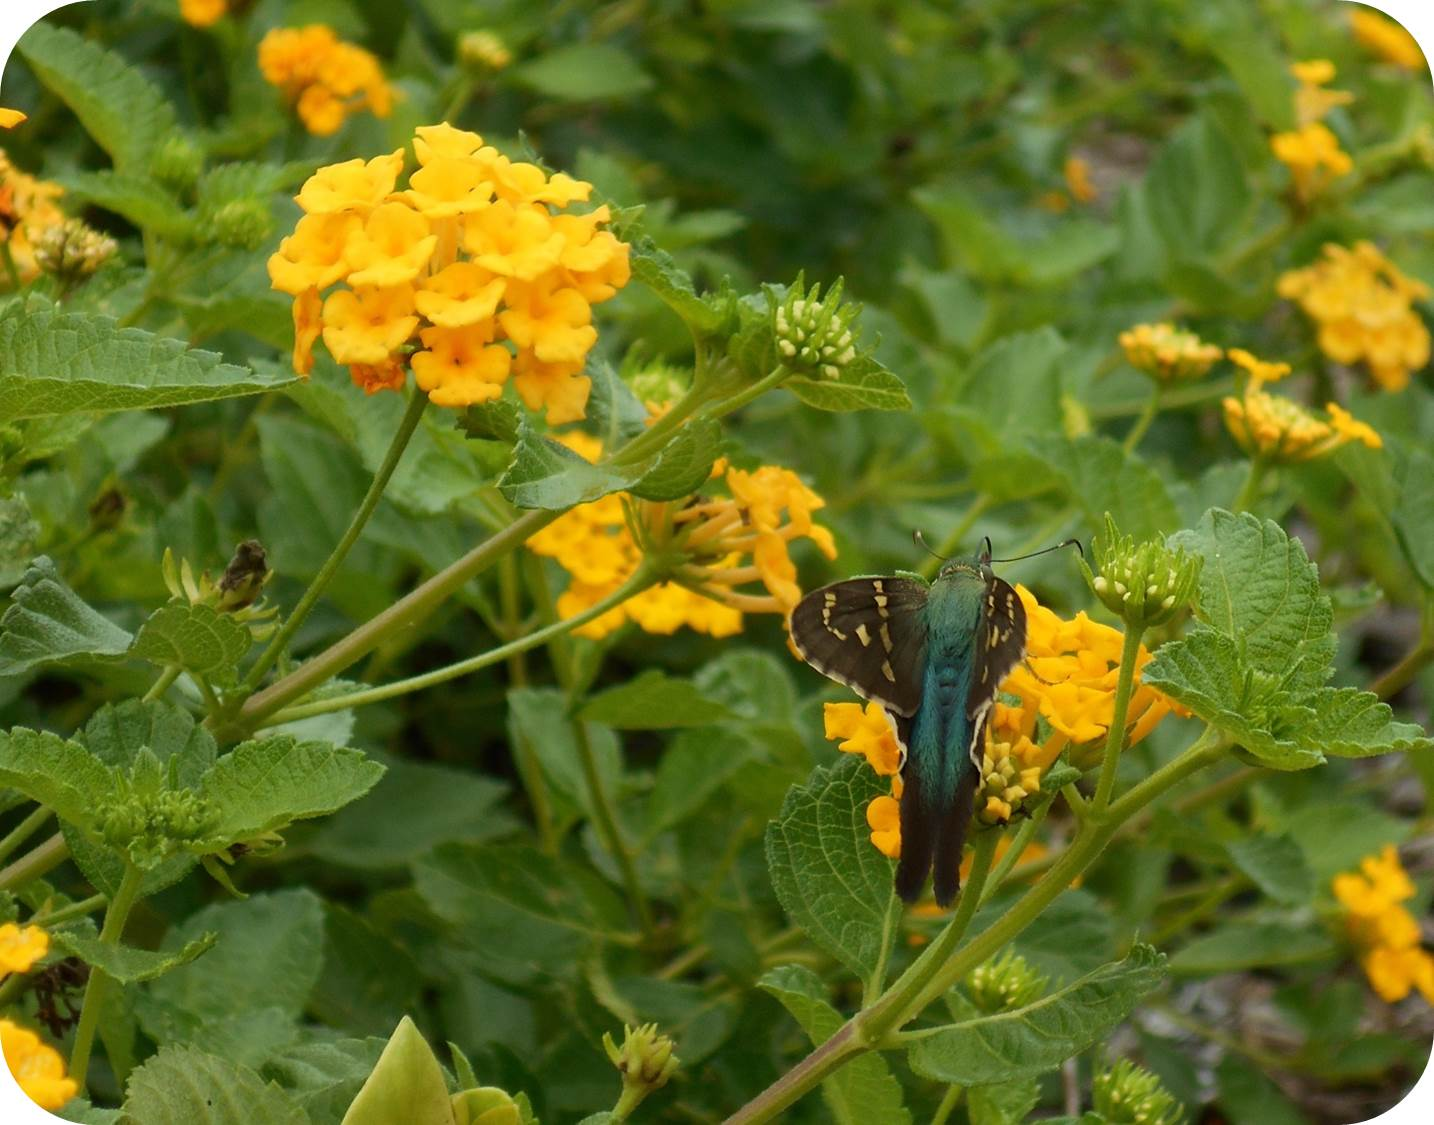 Lantana flowers with butterfly